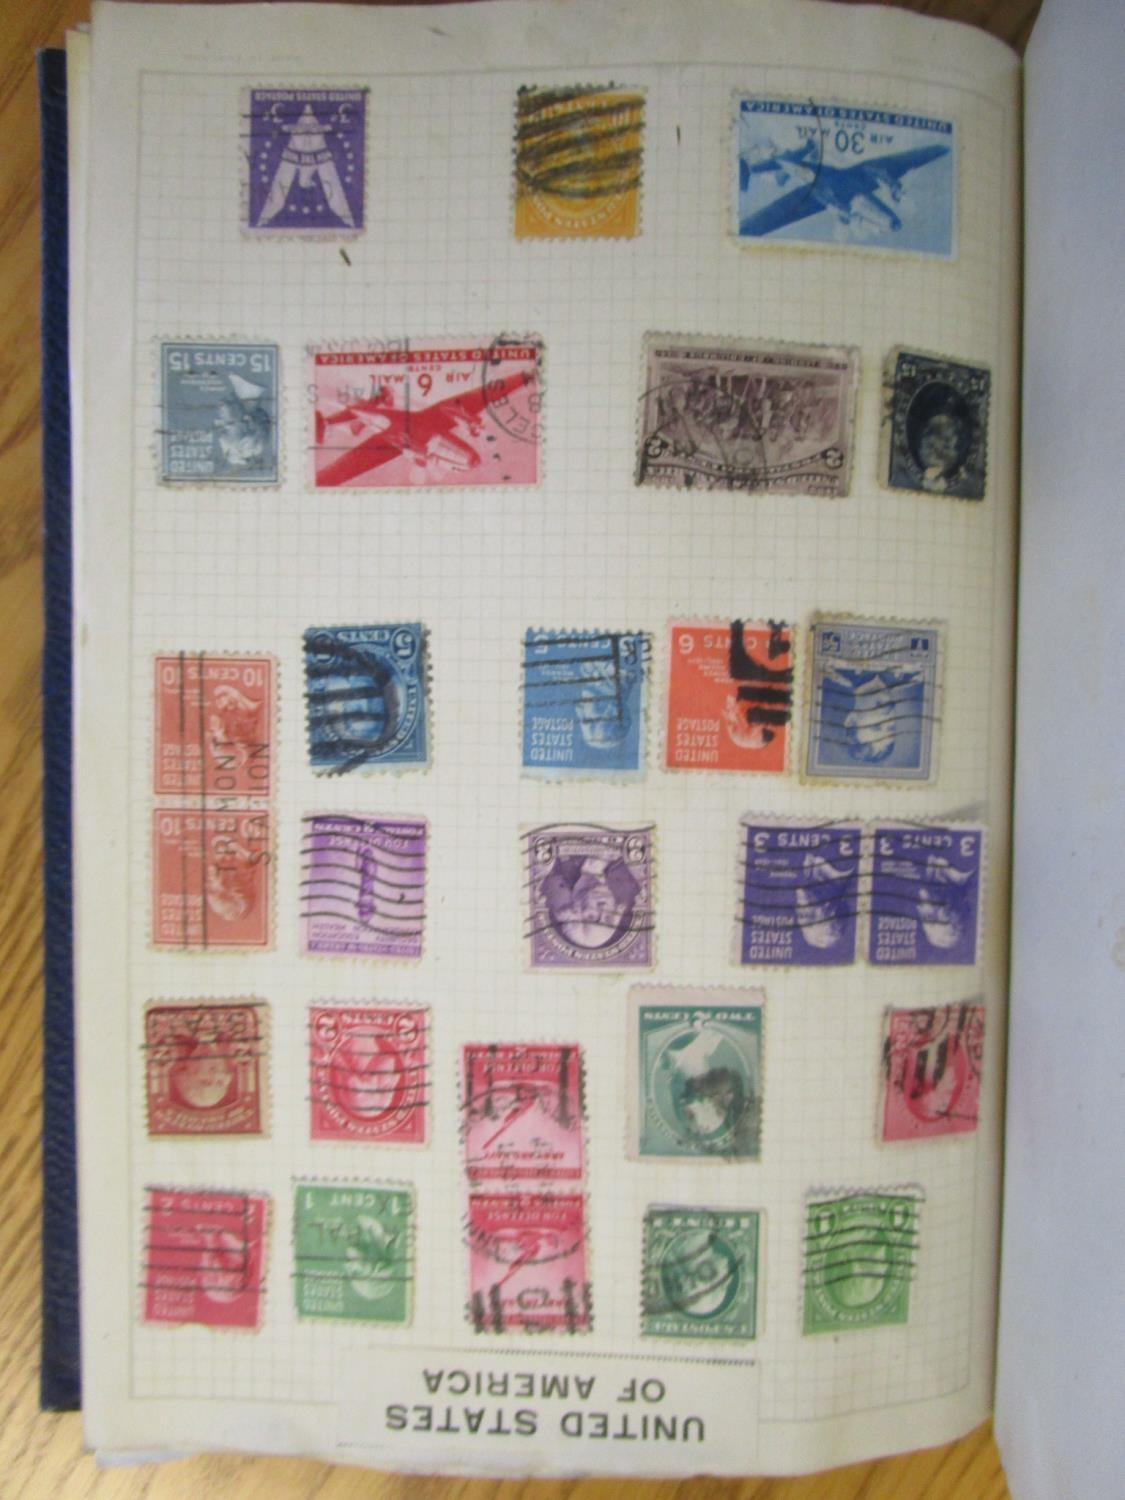 Mixed stamps from around the world mounted in albums and loose to include Victorian Penny Reds, - Image 18 of 18